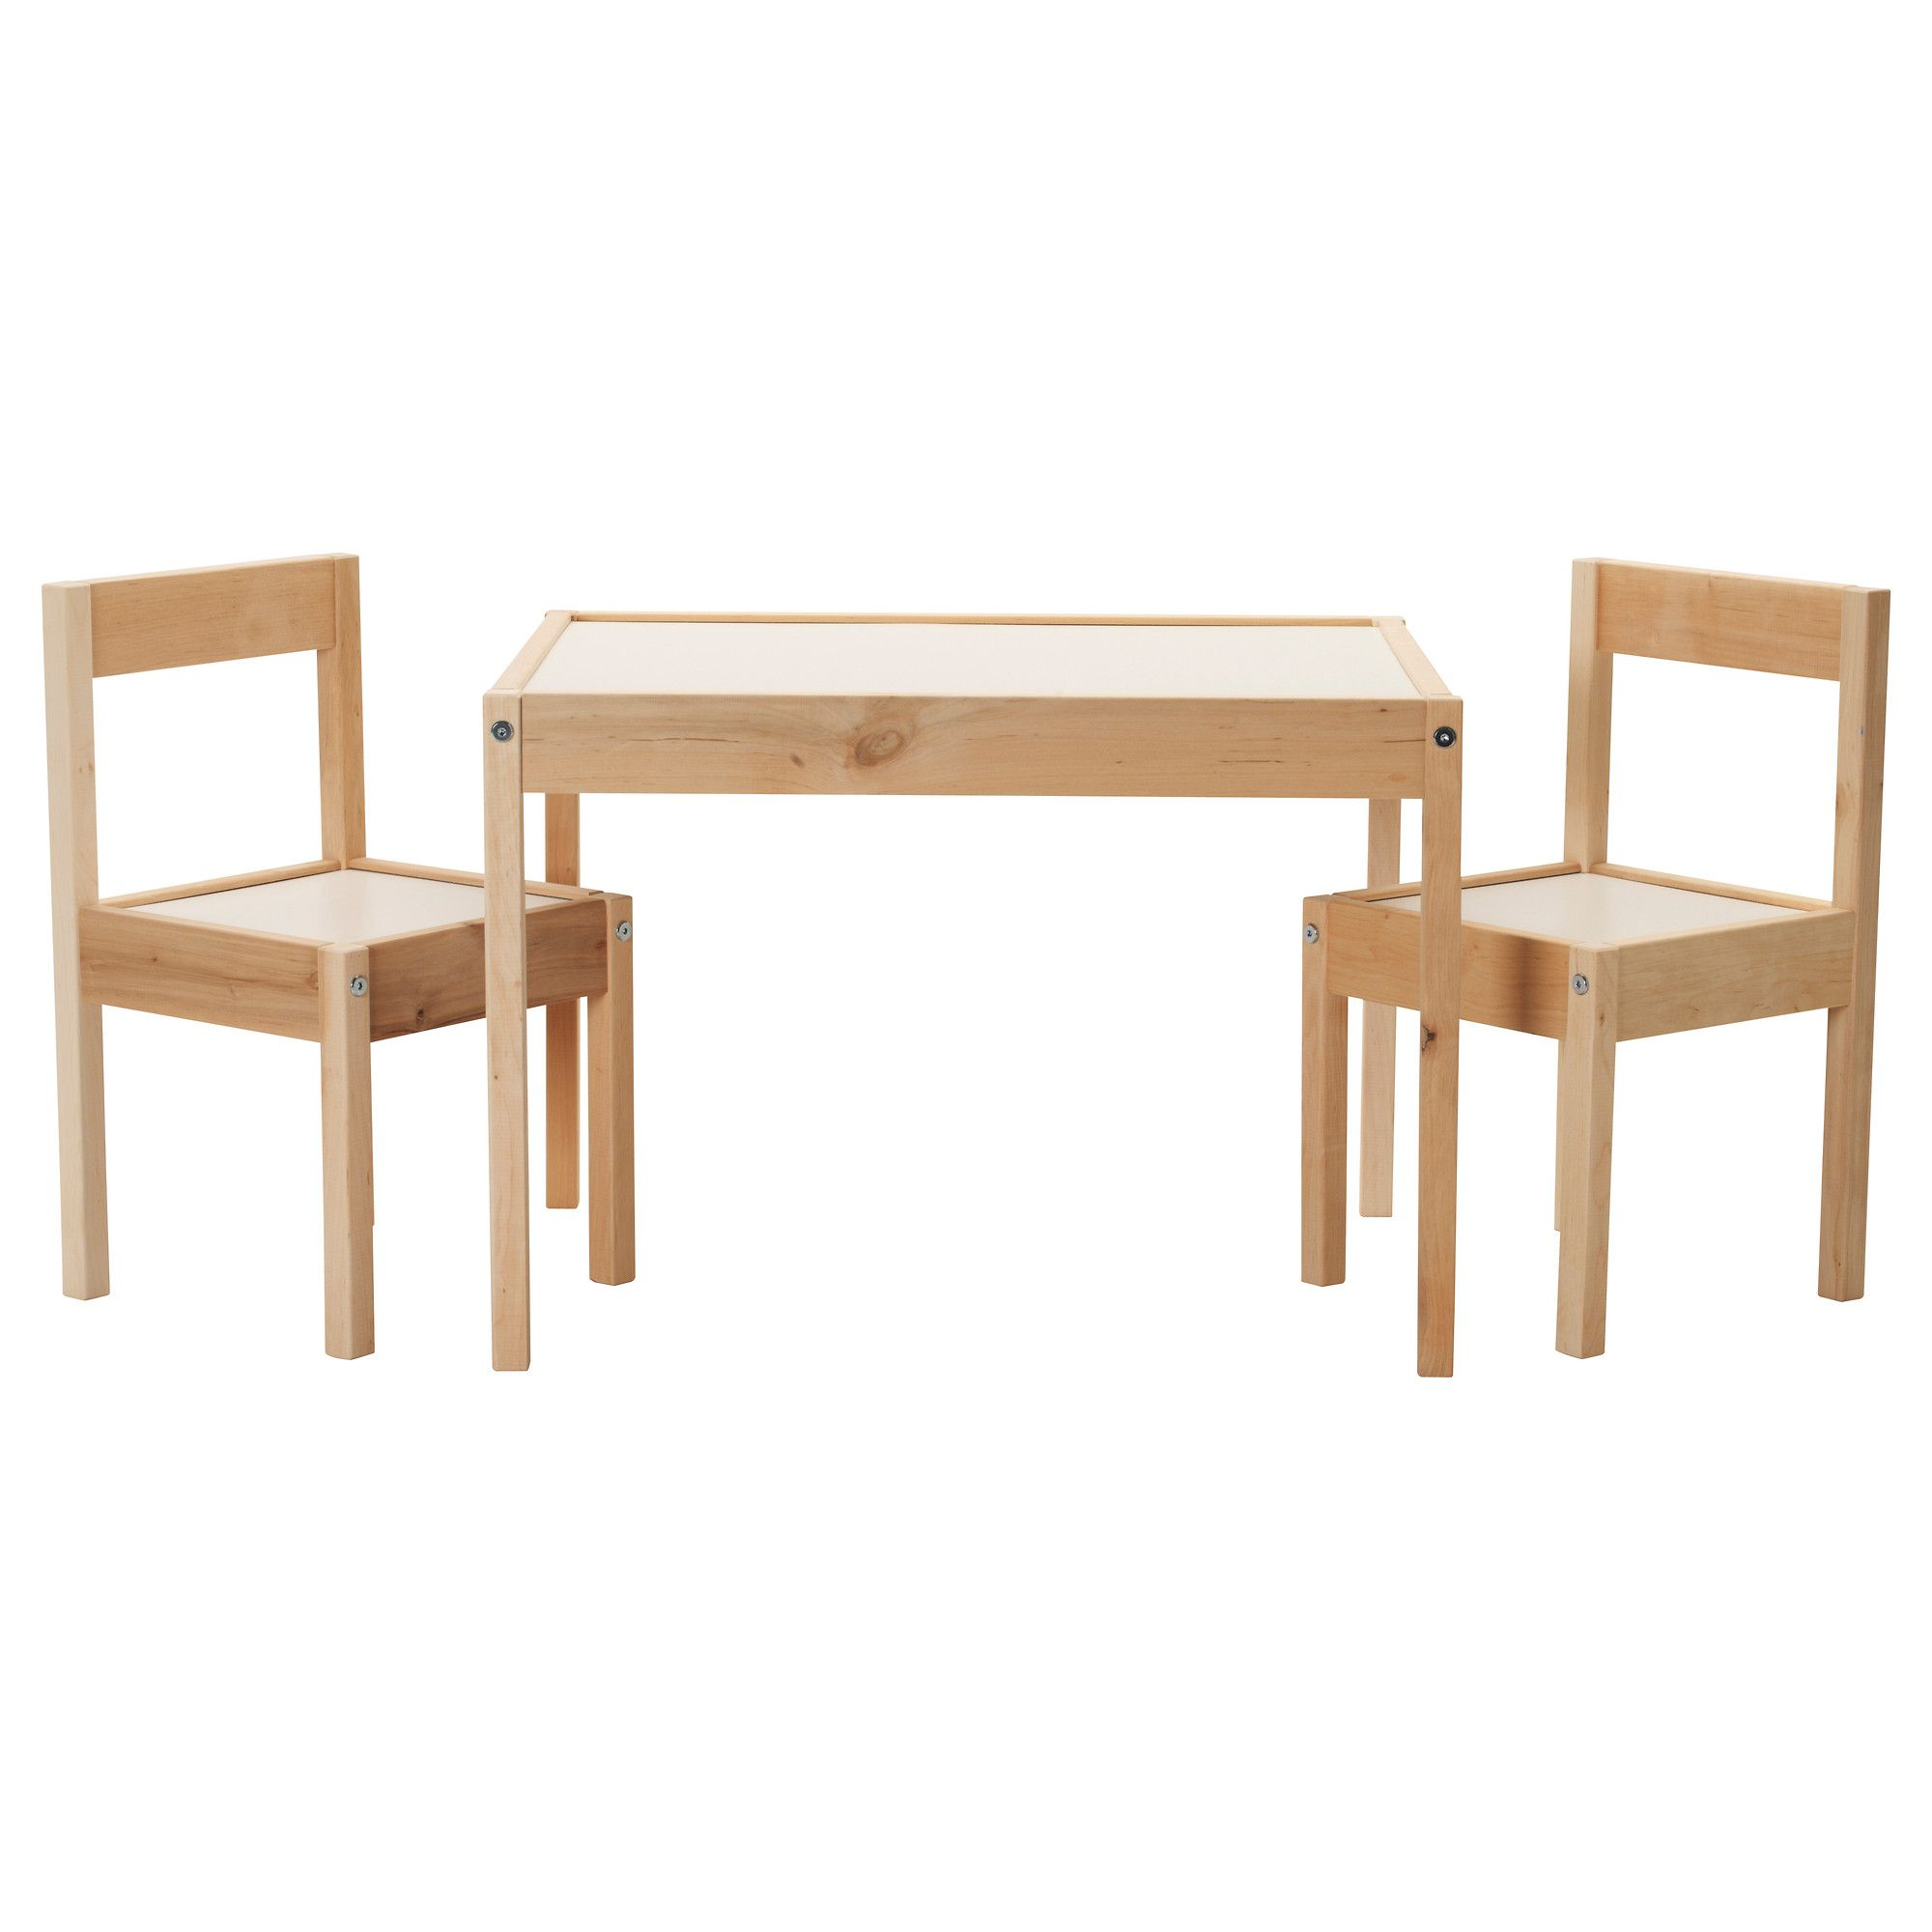 L Tt Children S Table And 2 Chairs White Pine Mesa Para Ni Os  # Muebles Roles Mesillas